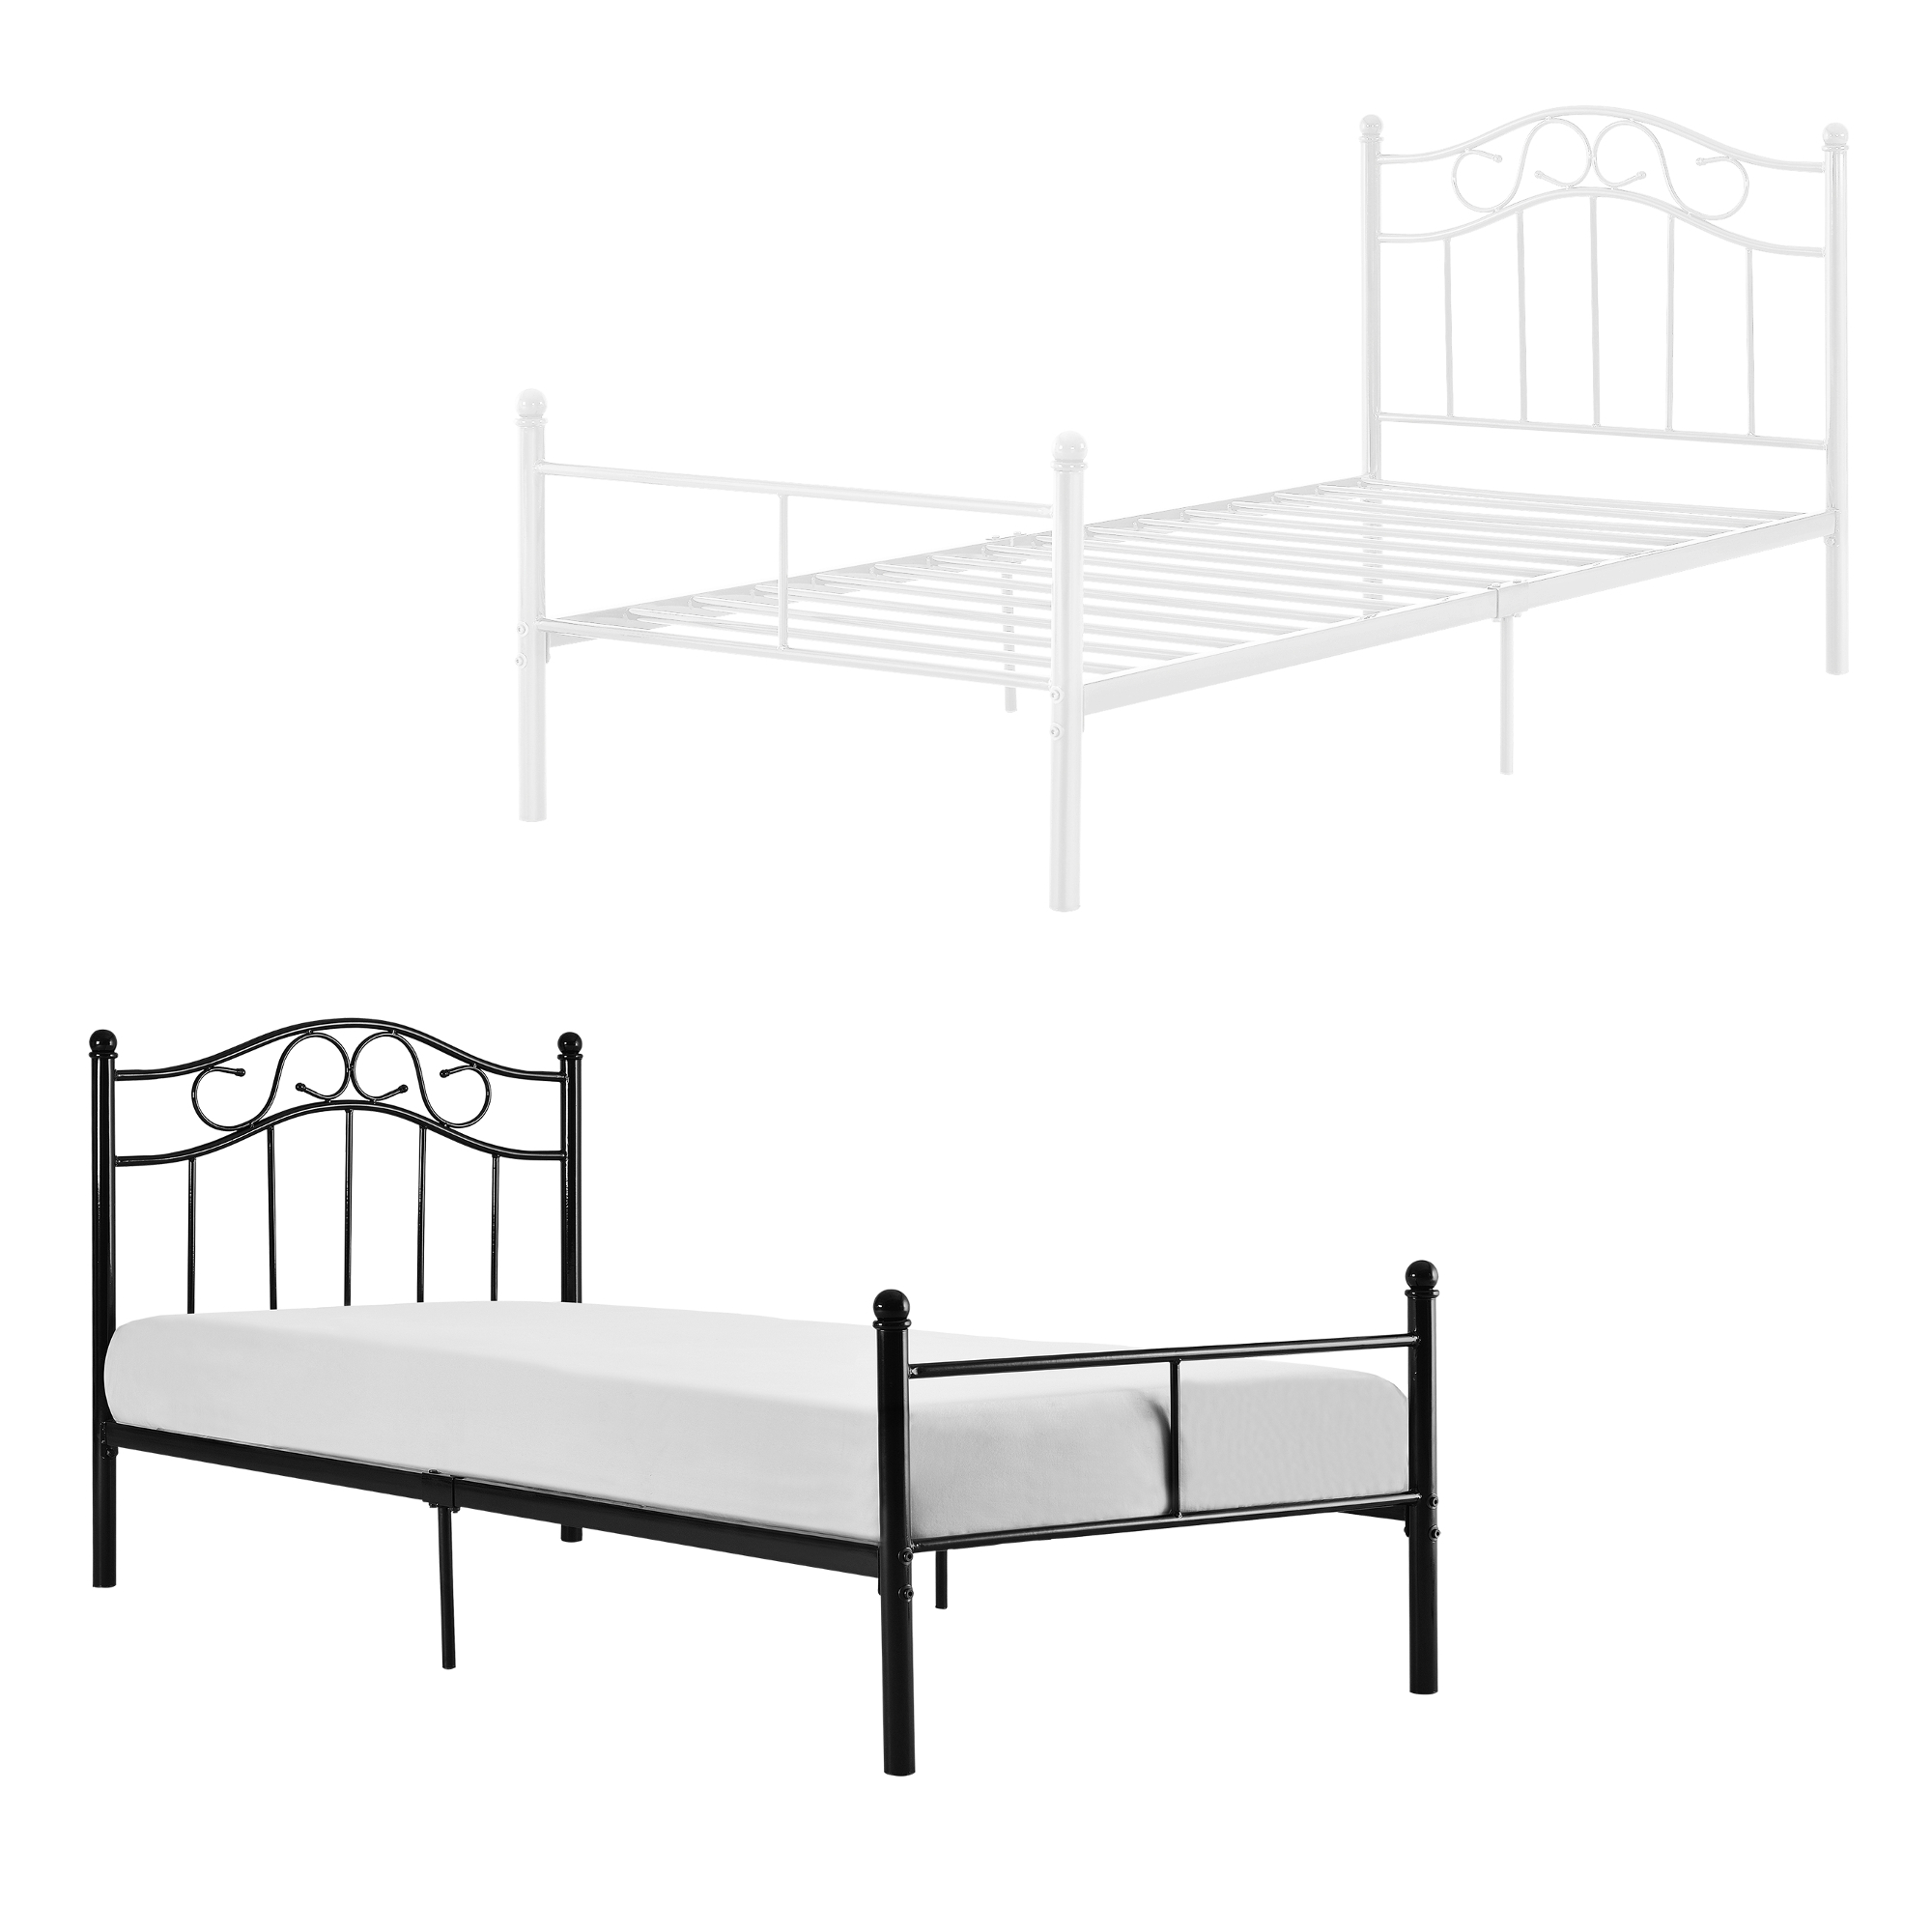 metallbett 90 120 140 180 200x200 bett bettgestell doppelbett ehebett ebay. Black Bedroom Furniture Sets. Home Design Ideas